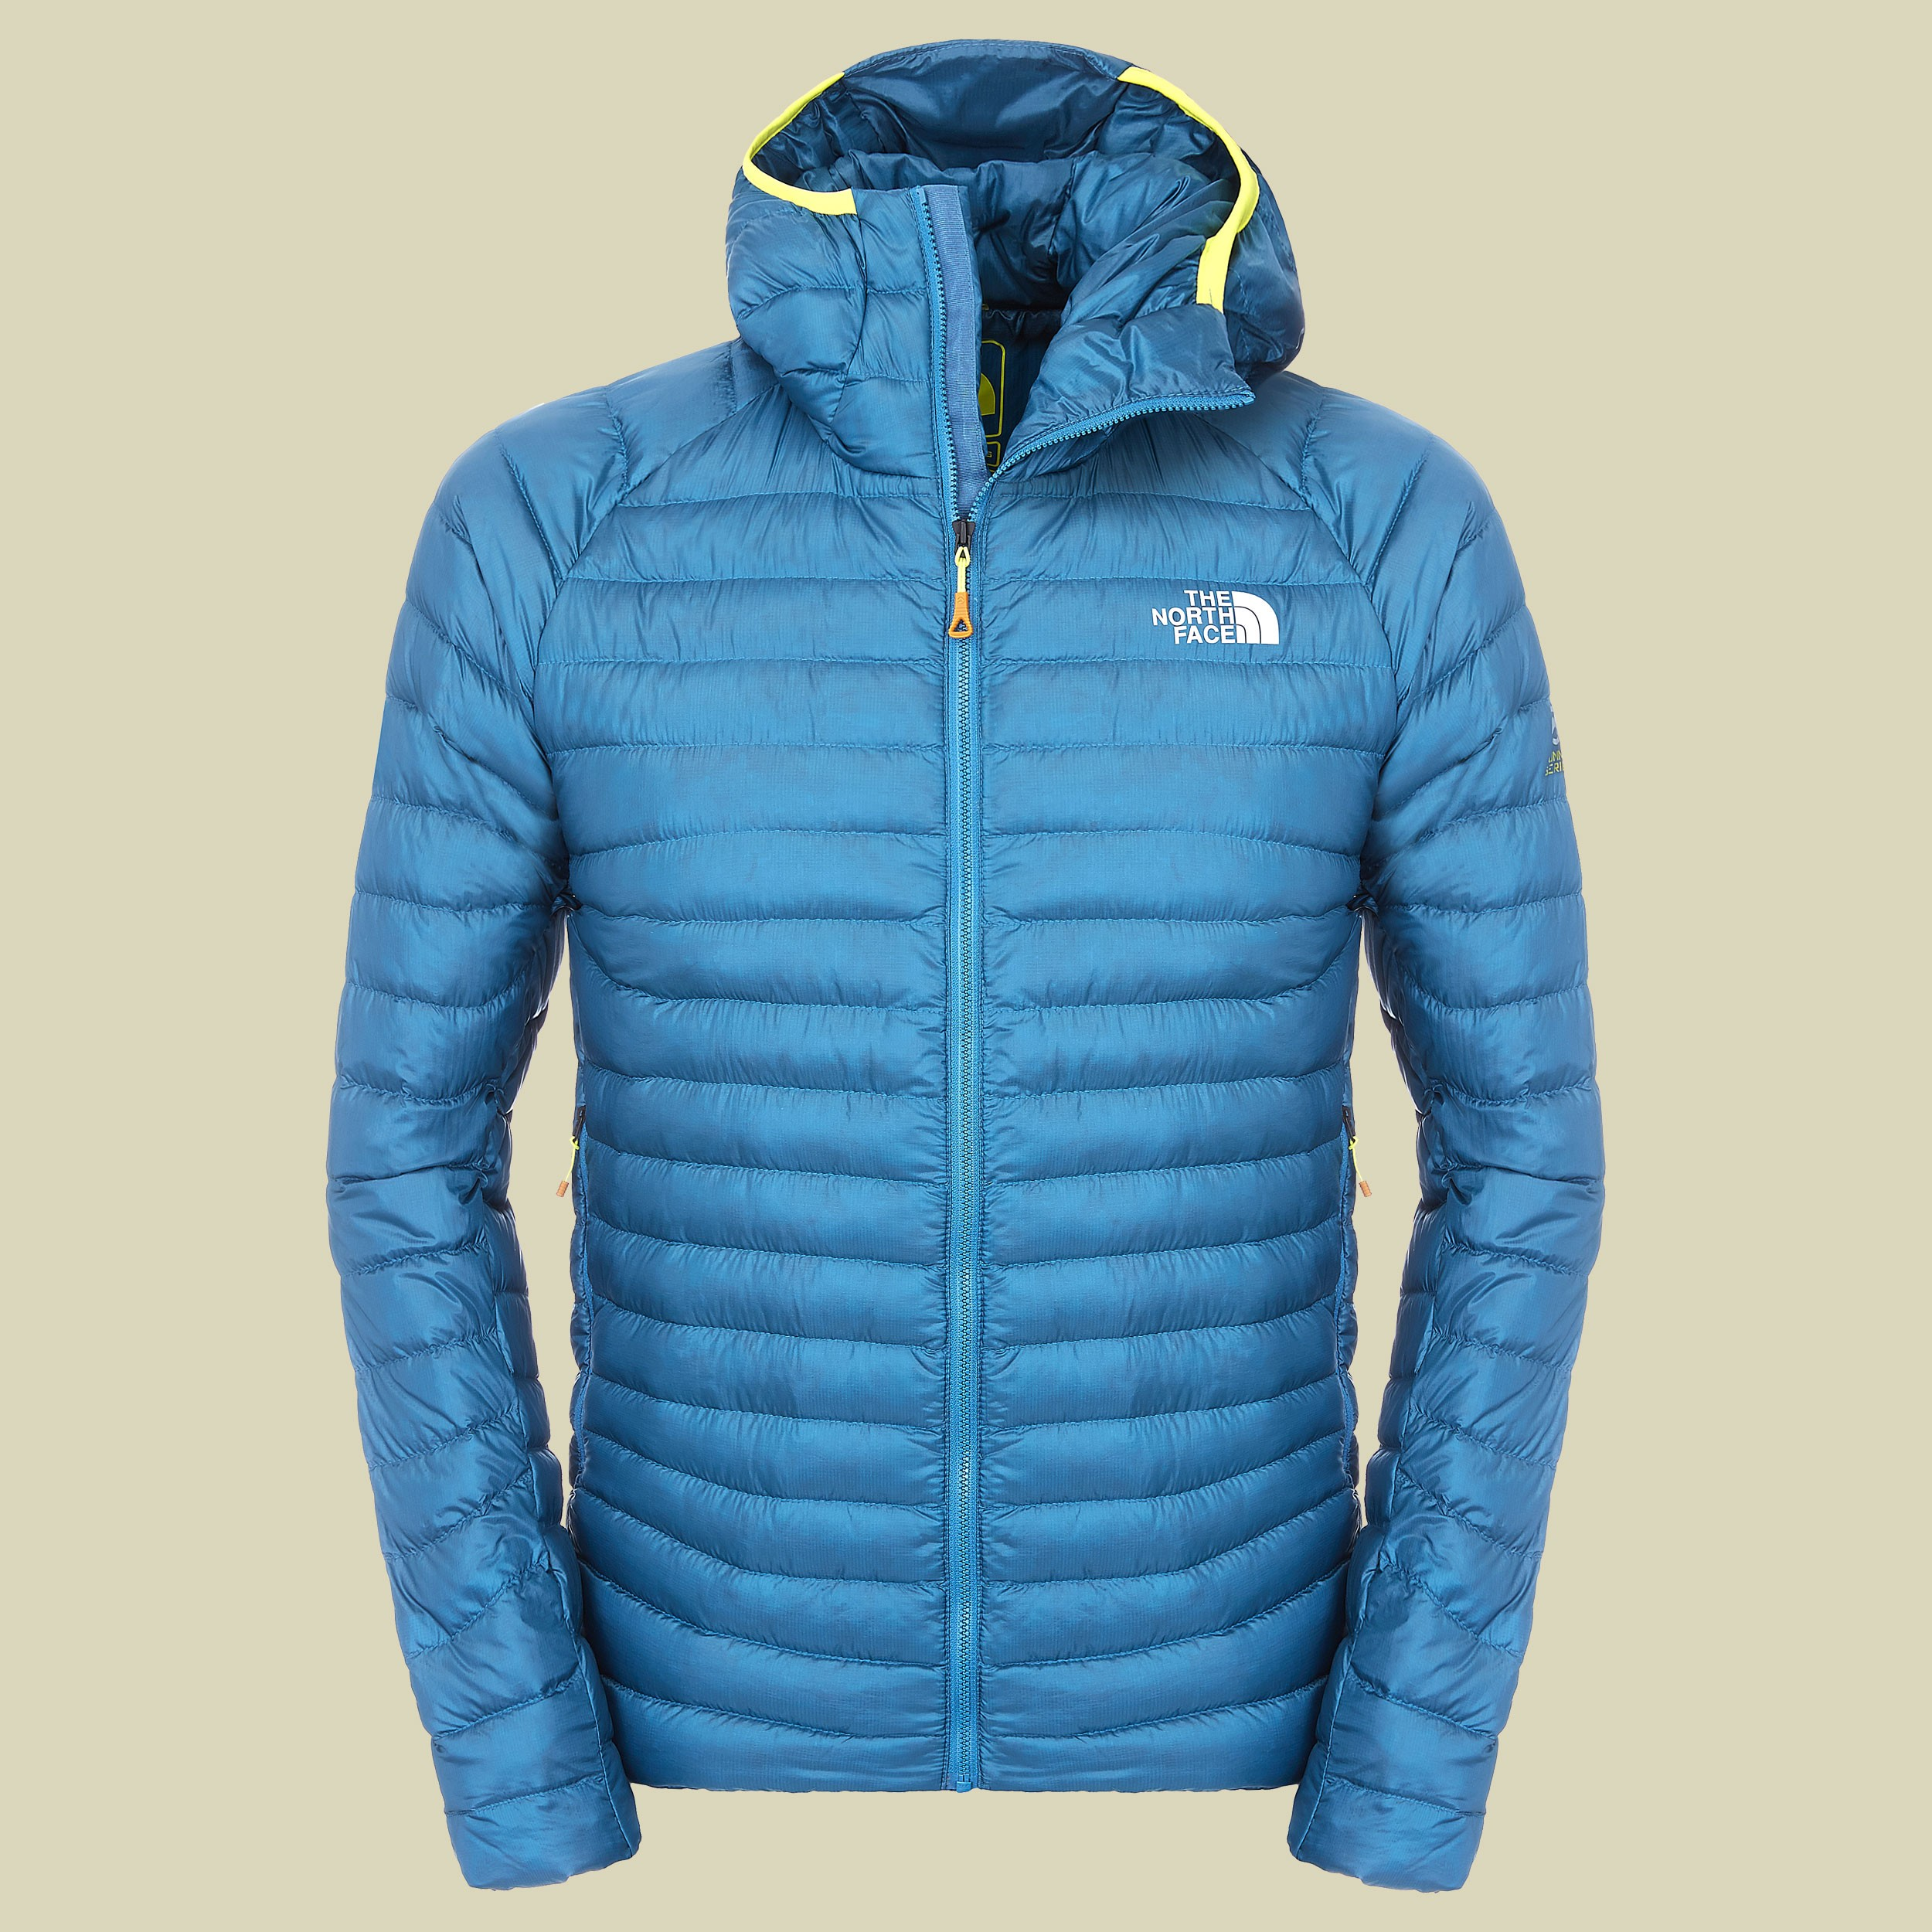 Quince Pro Hooded Jacket Men